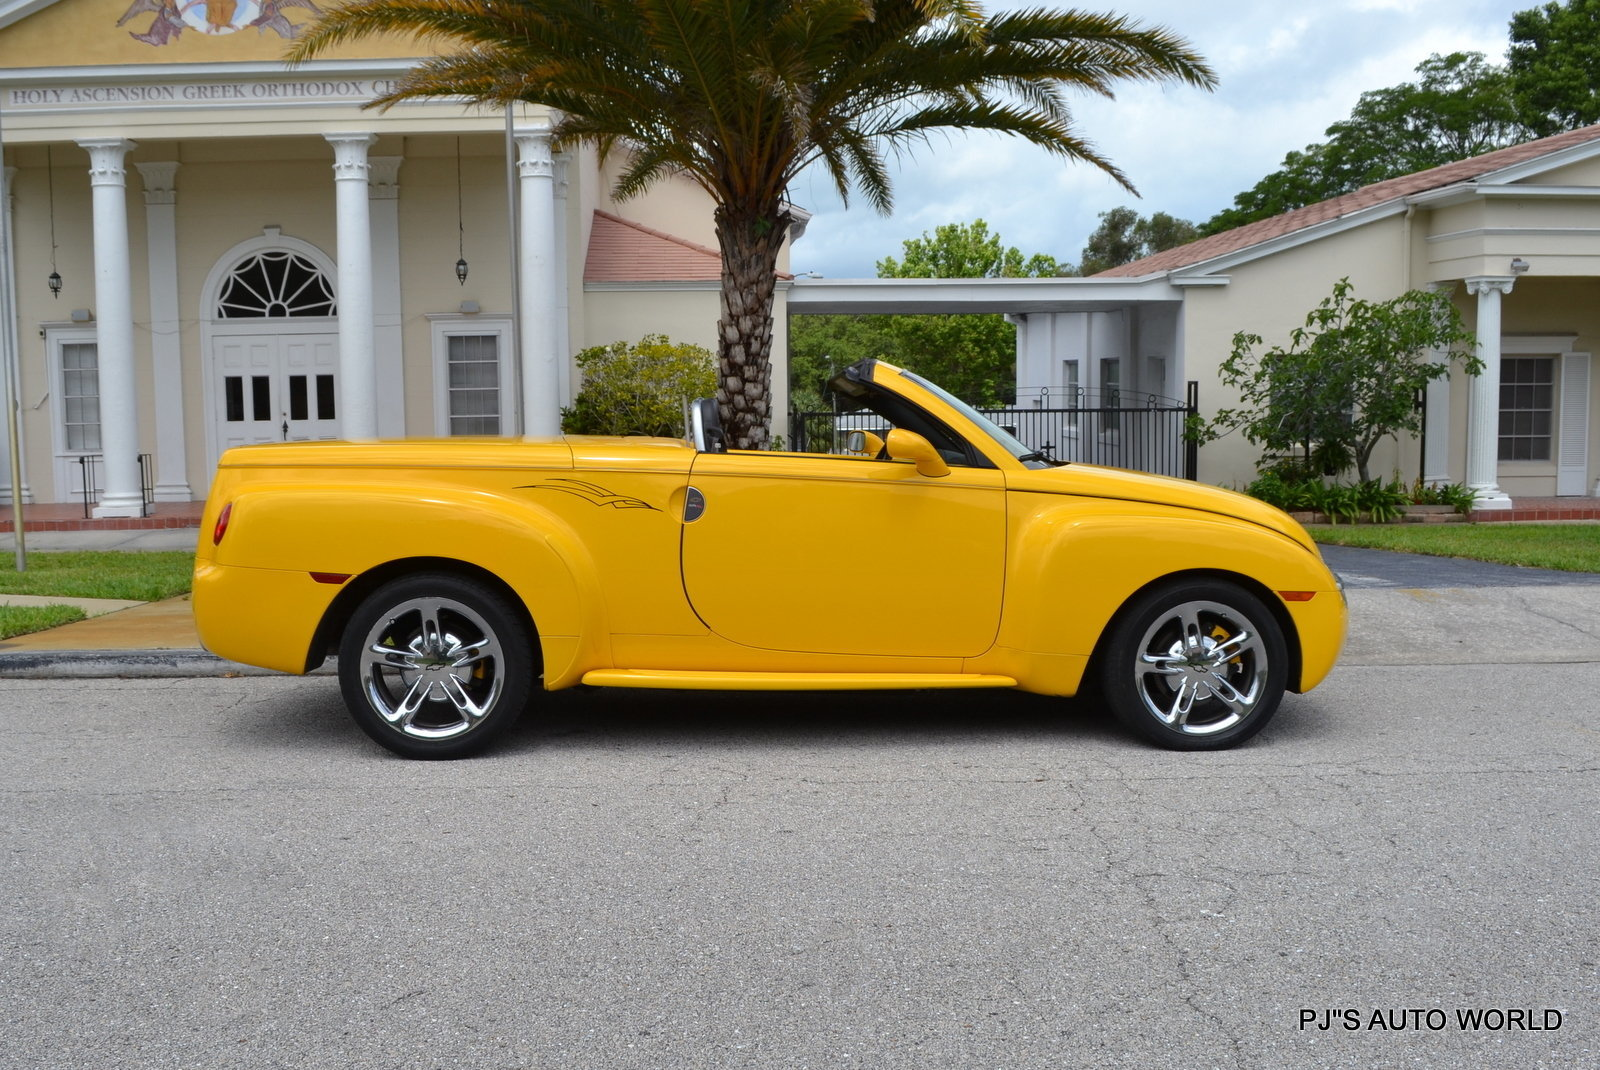 2003 Chevrolet Ssr Pj S Auto World Classic Cars For Sale